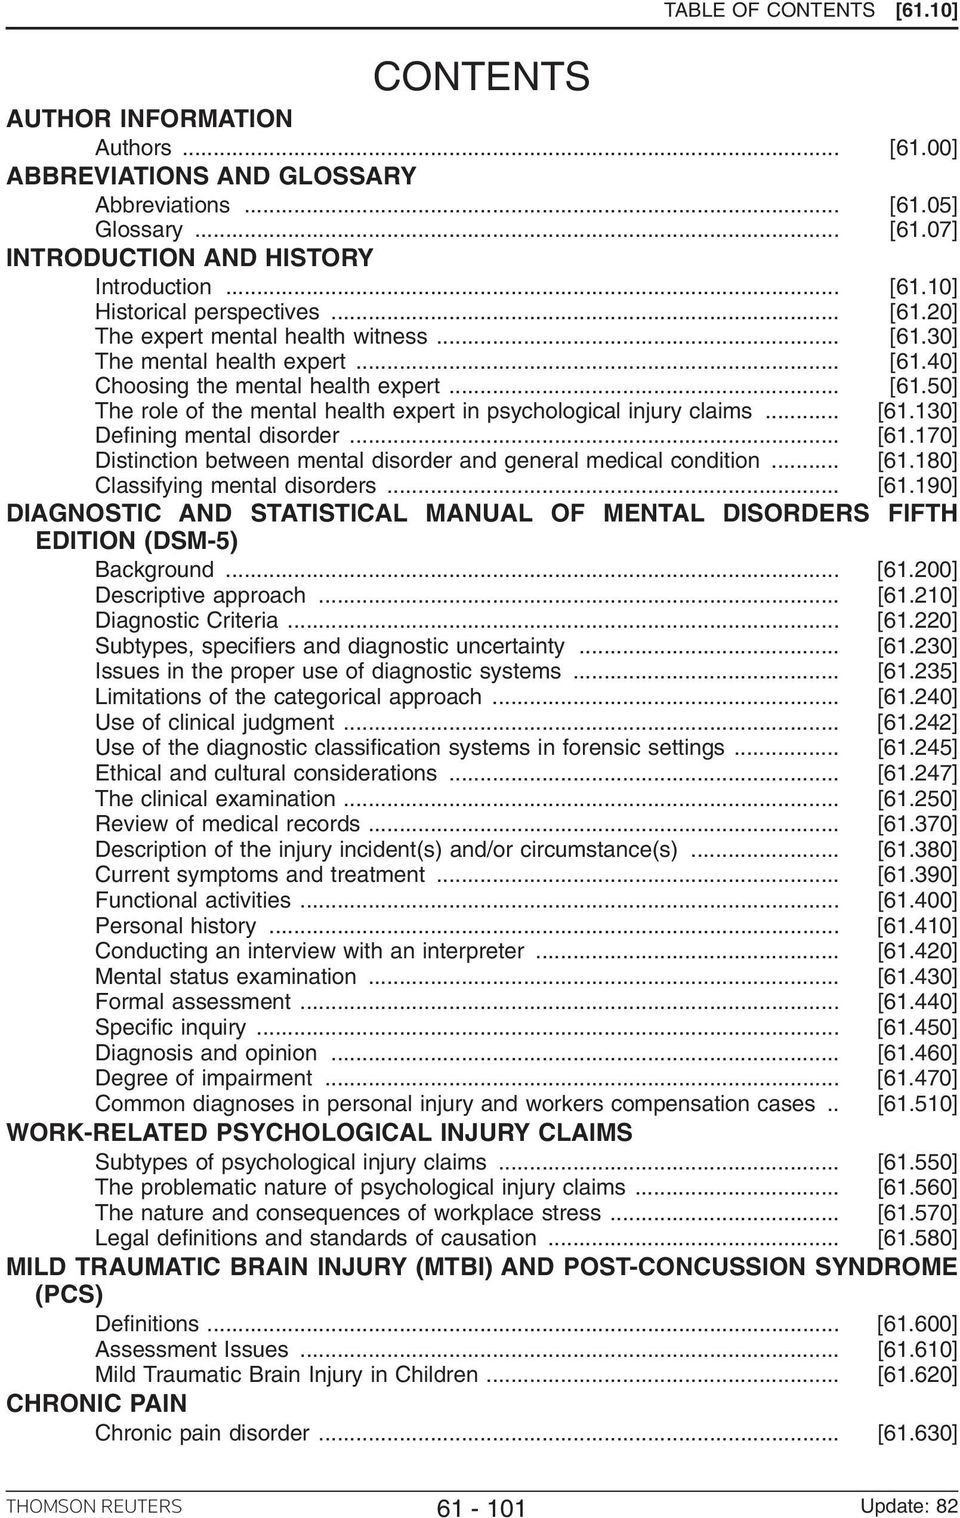 .. [61.130] Defining mental disorder... [61.170] Distinction between mental disorder and general medical condition... [61.180] Classifying mental disorders... [61.190] DIAGNOSTIC AND STATISTICAL MANUAL OF MENTAL DISORDERS FIFTH EDITION (DSM-5) Background.